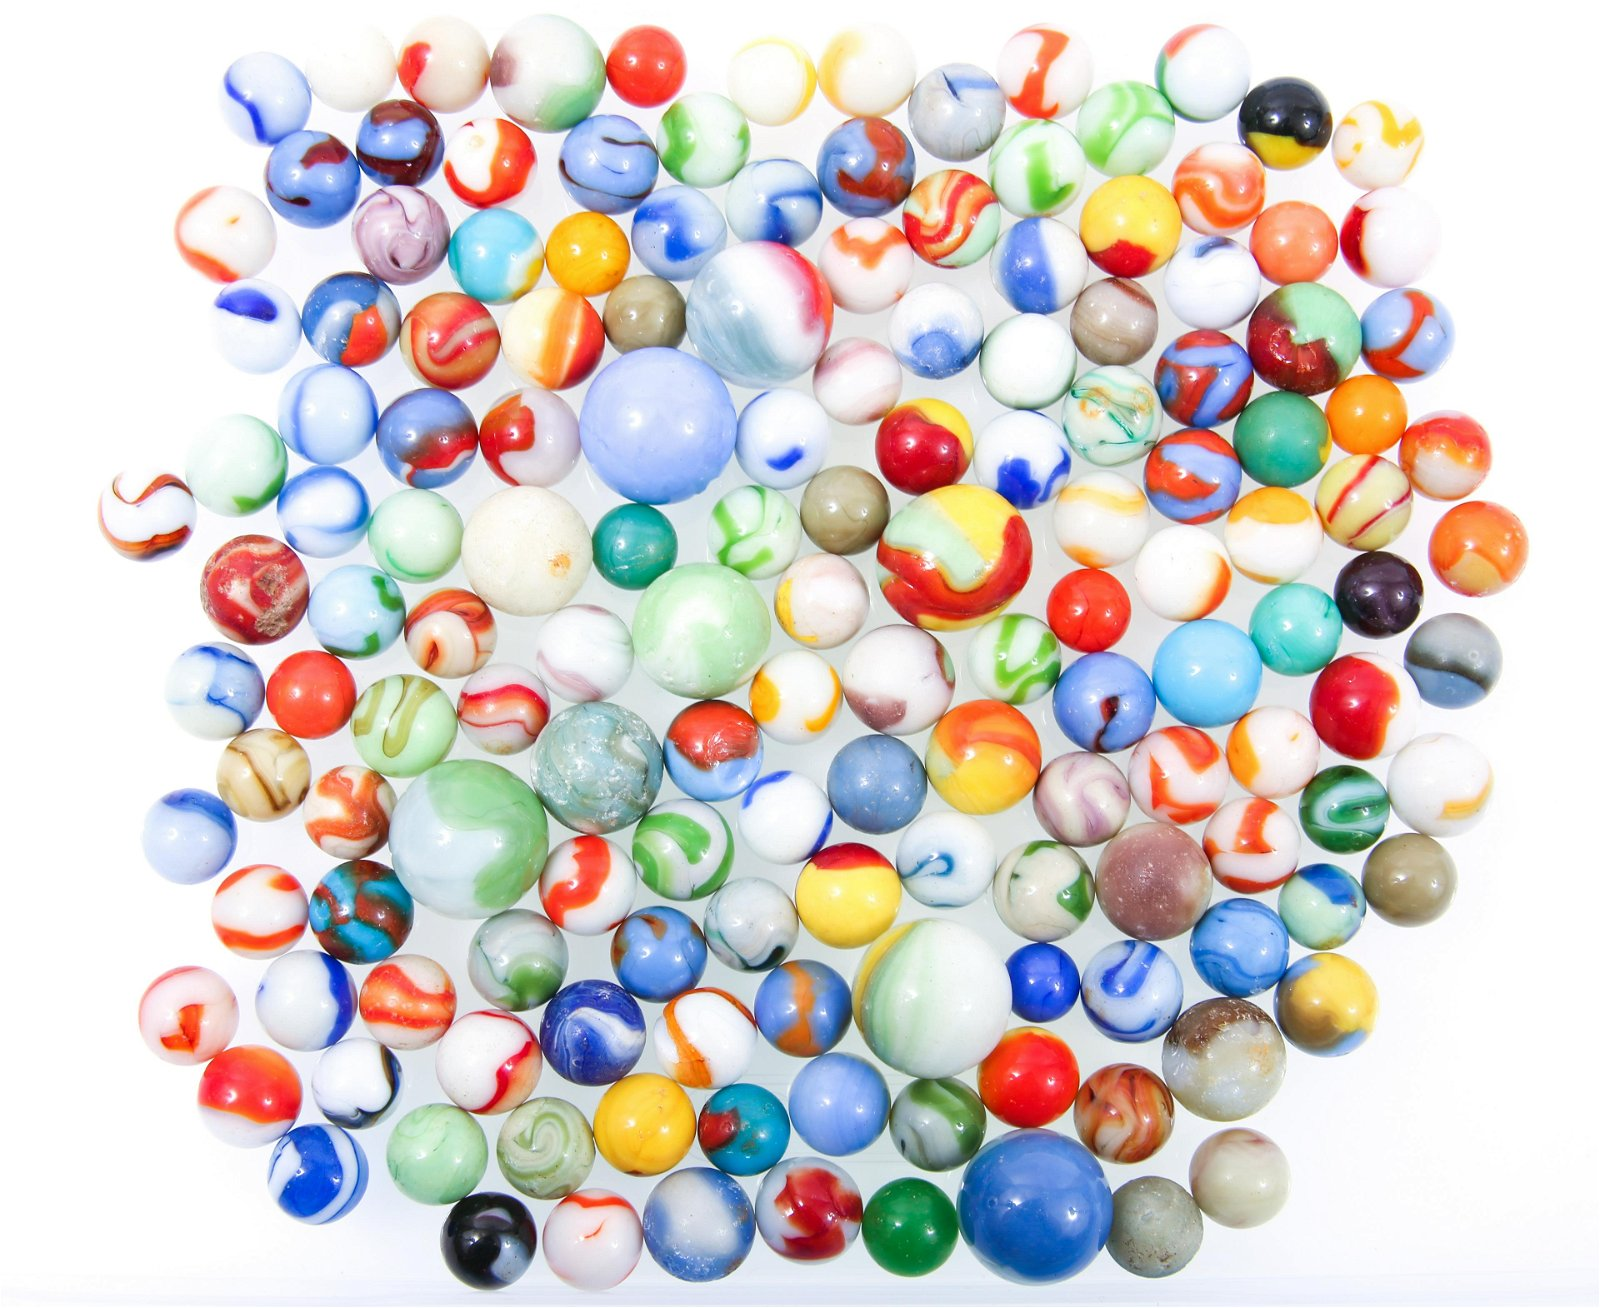 20TH C. OPAQUE SWIRL MARBLES